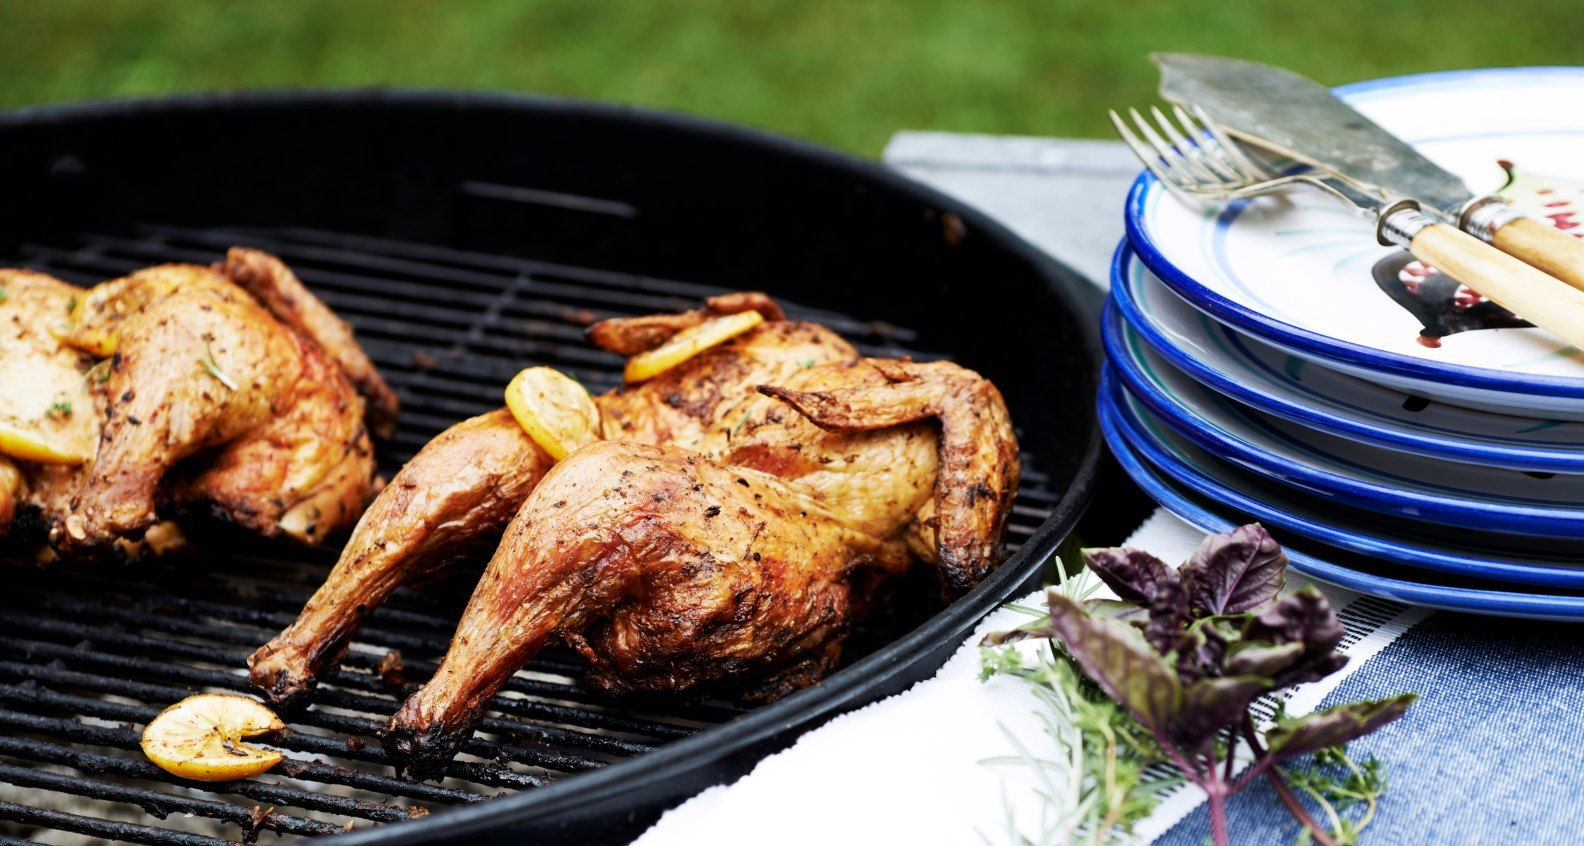 8 Tips for a Budget-Friendly Cookout | Southern Kitchen